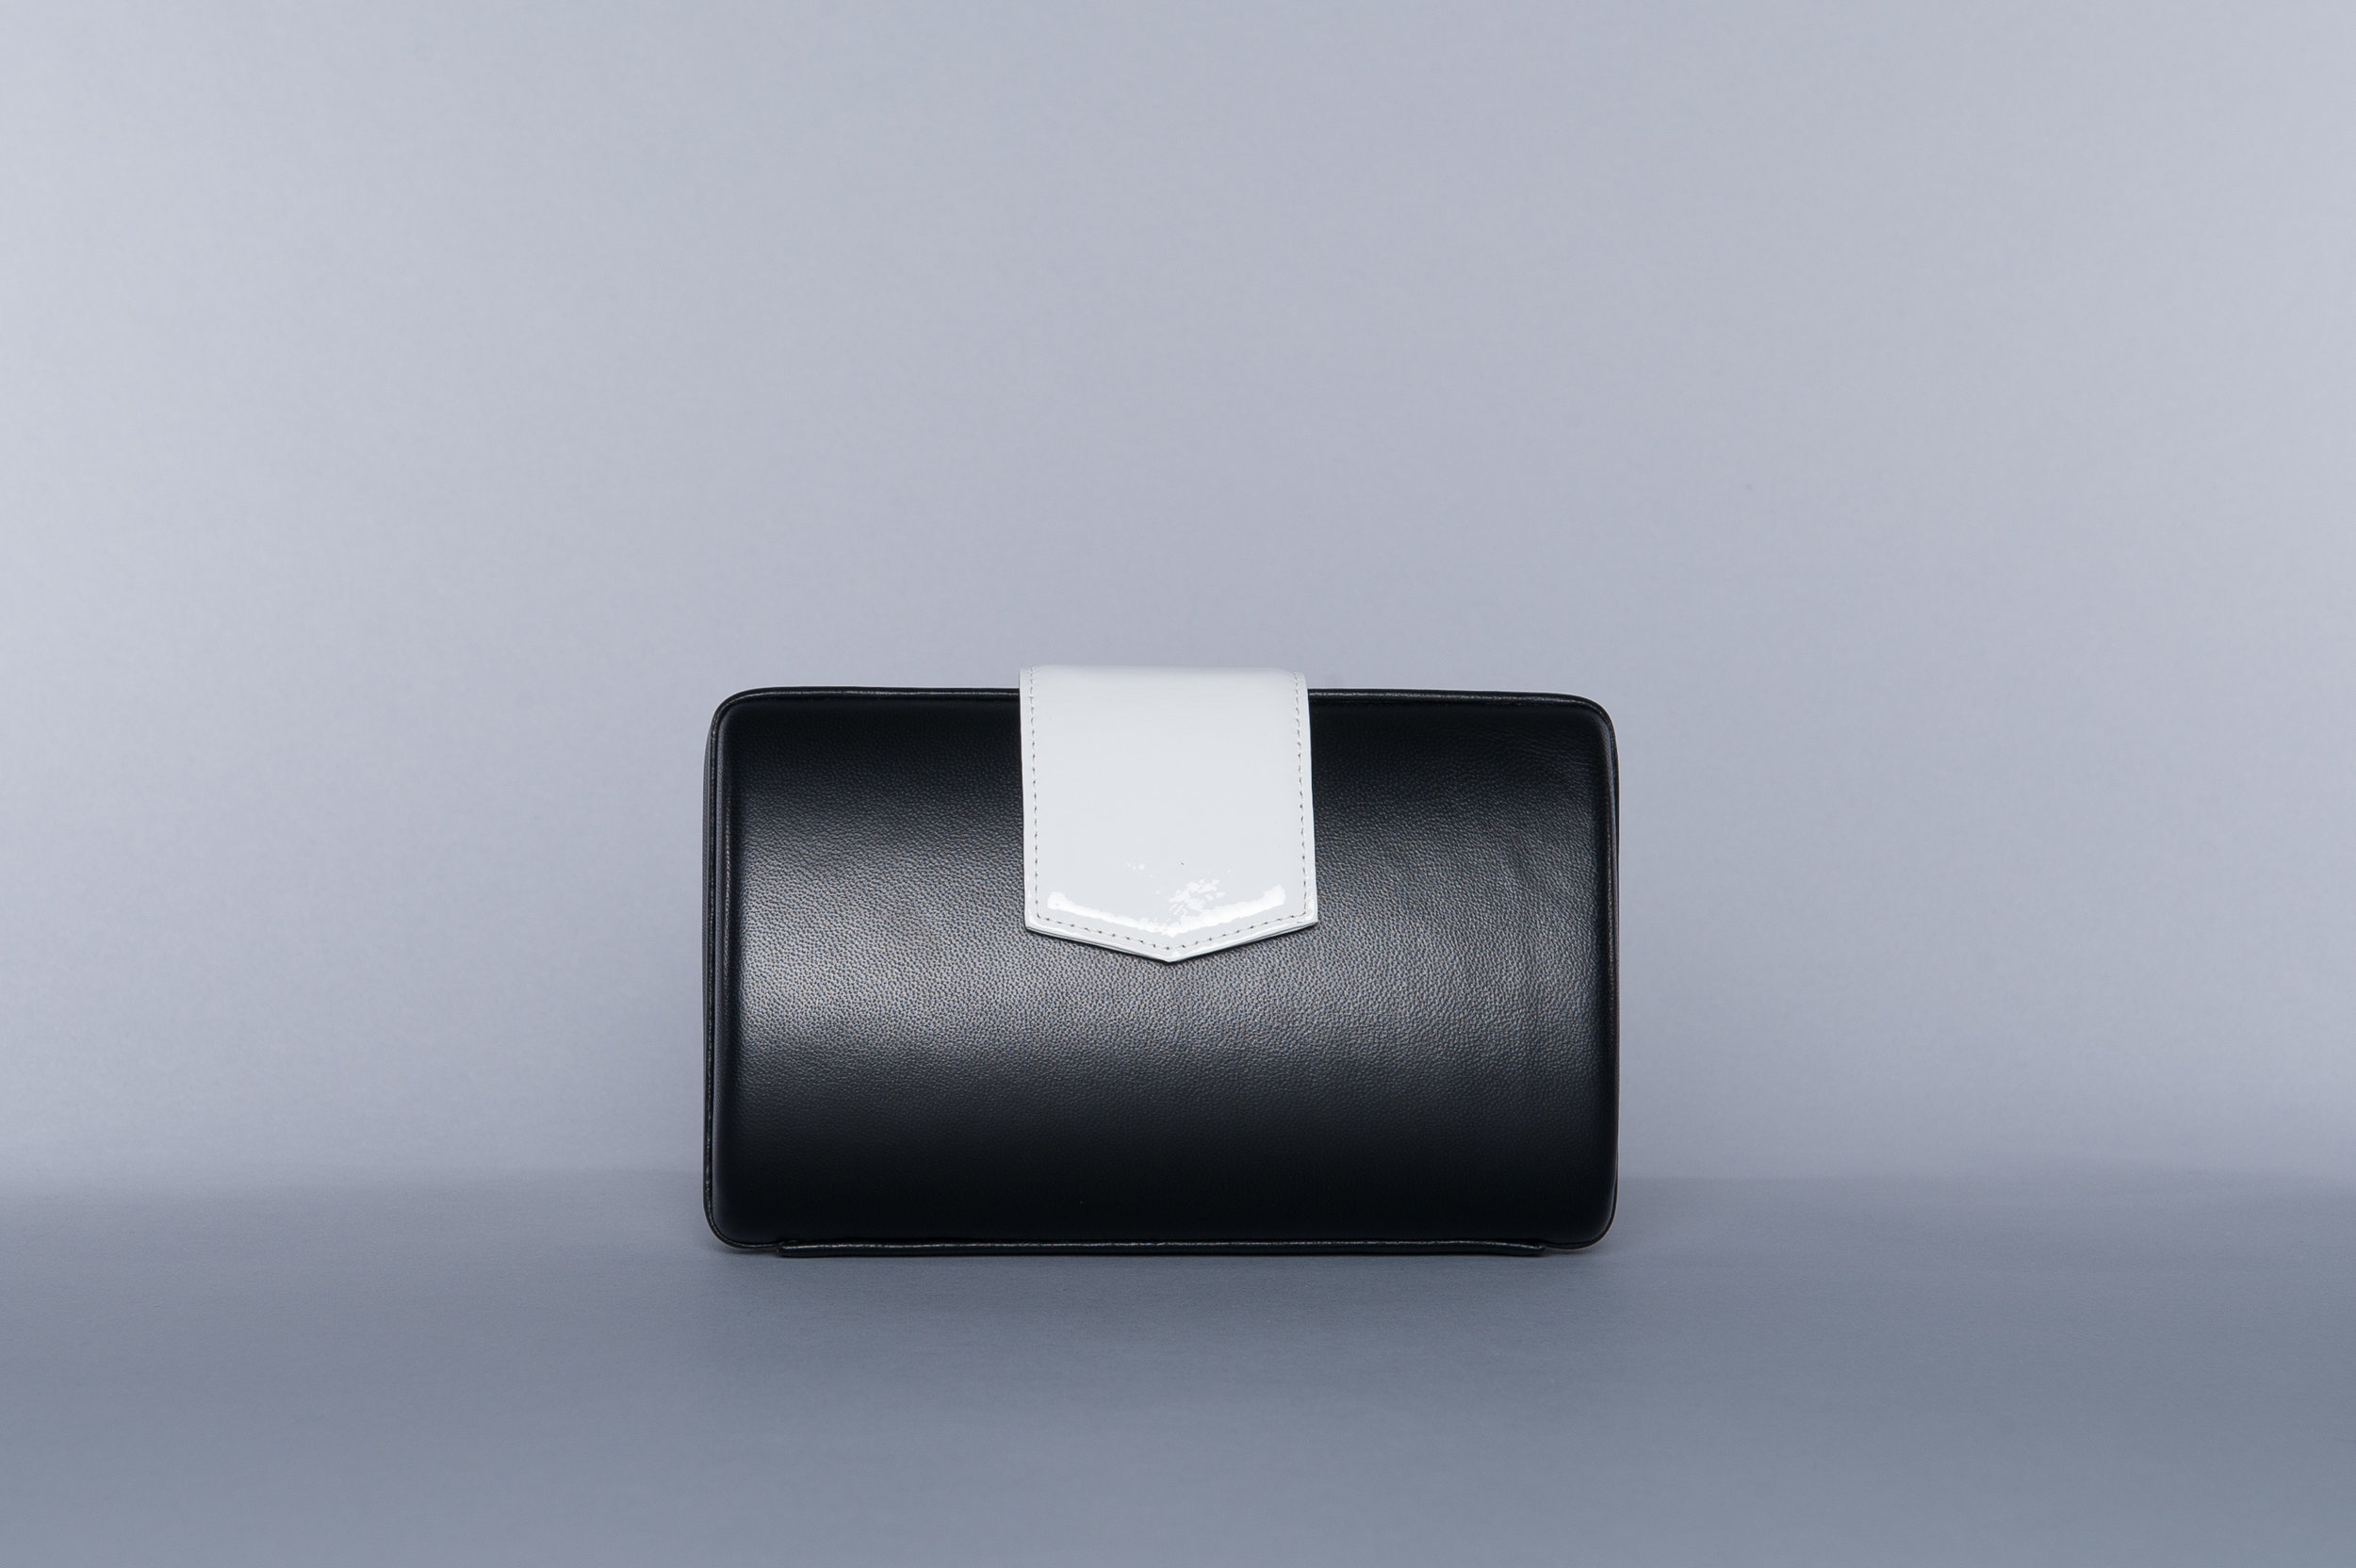 The CLIO - our update on the evening clutch. Its large tab closure accentuates its sleek silhouette -